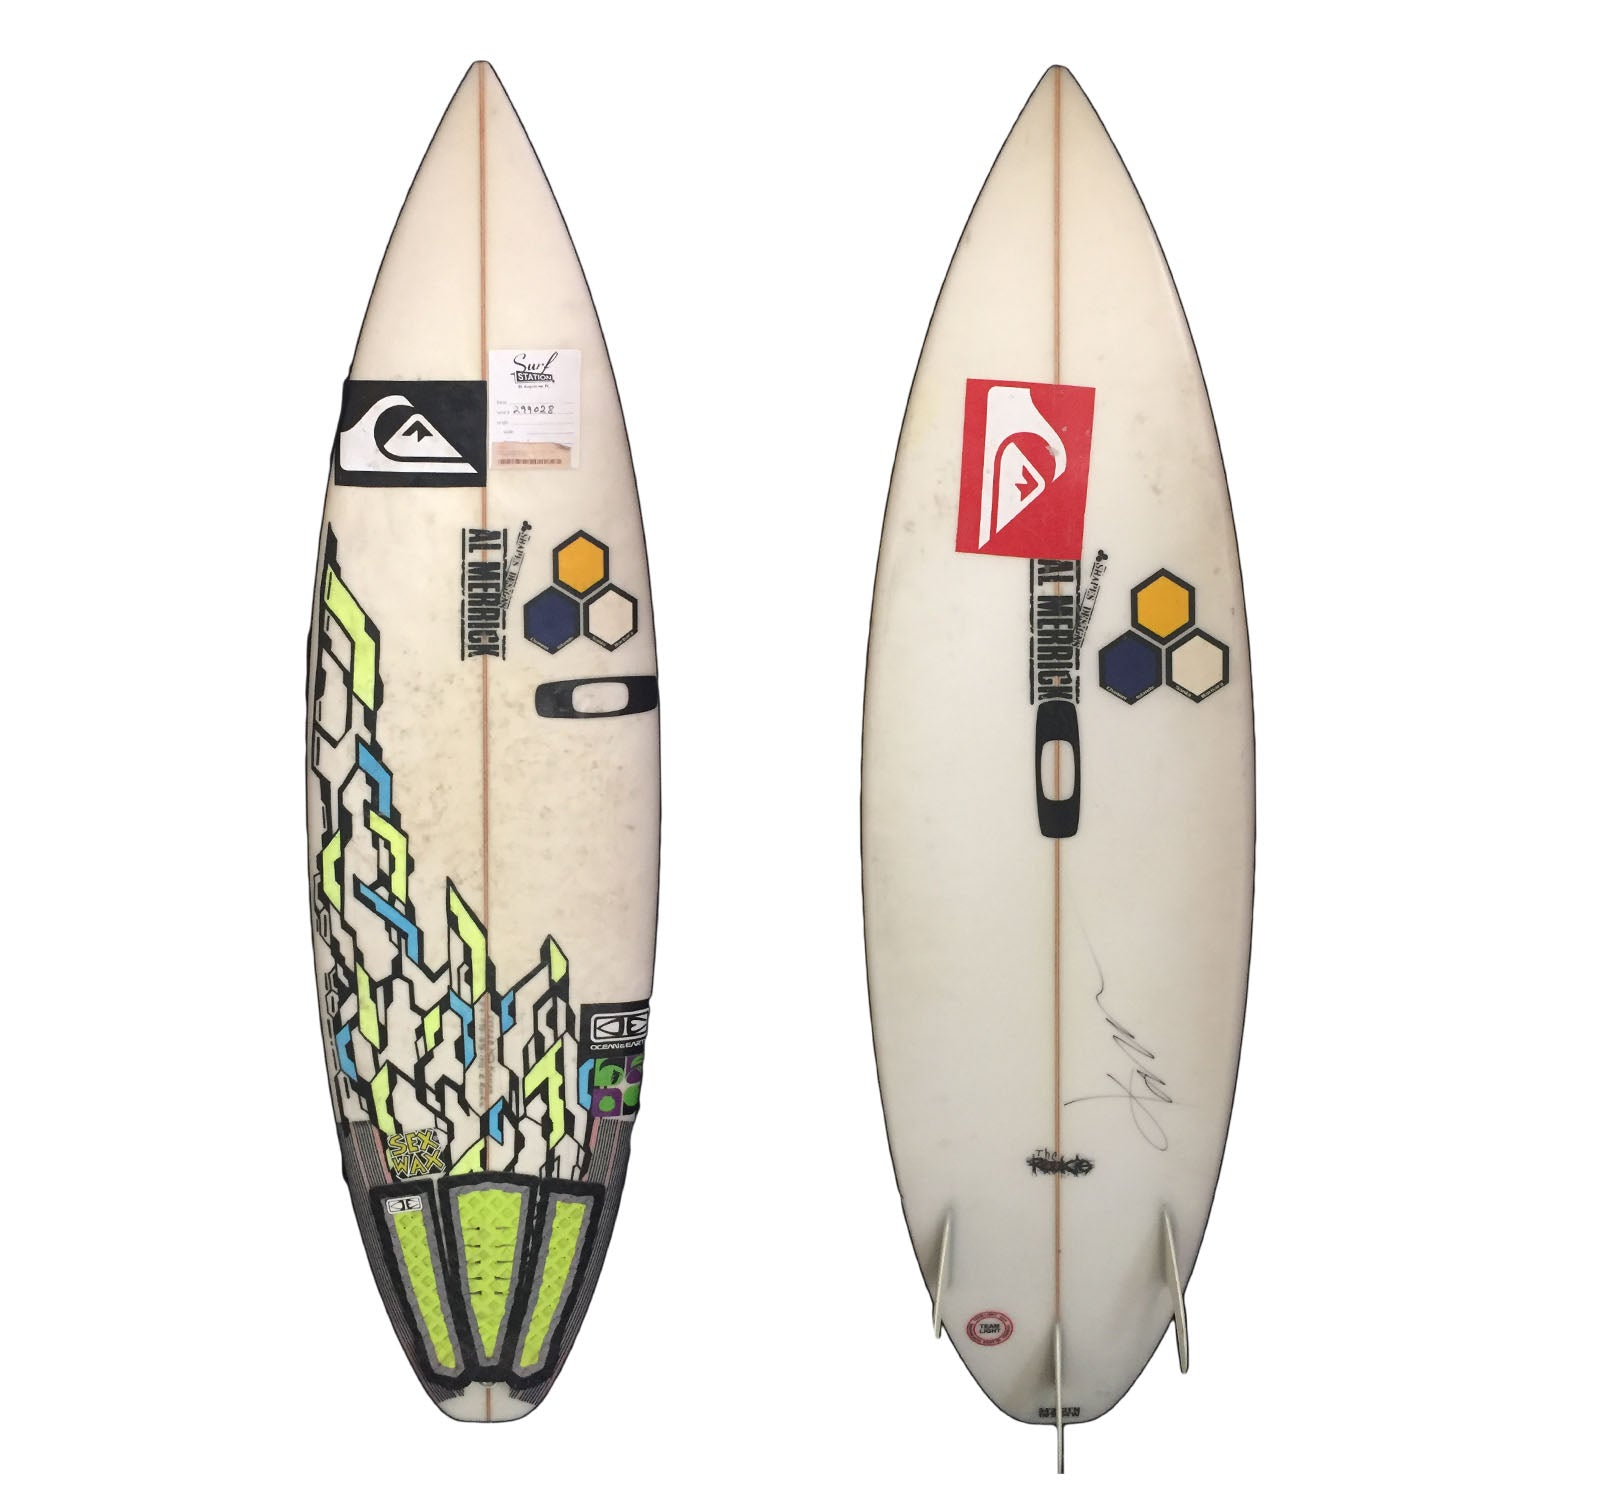 Channel Islands Rookie 5'4 Collector Surfboard